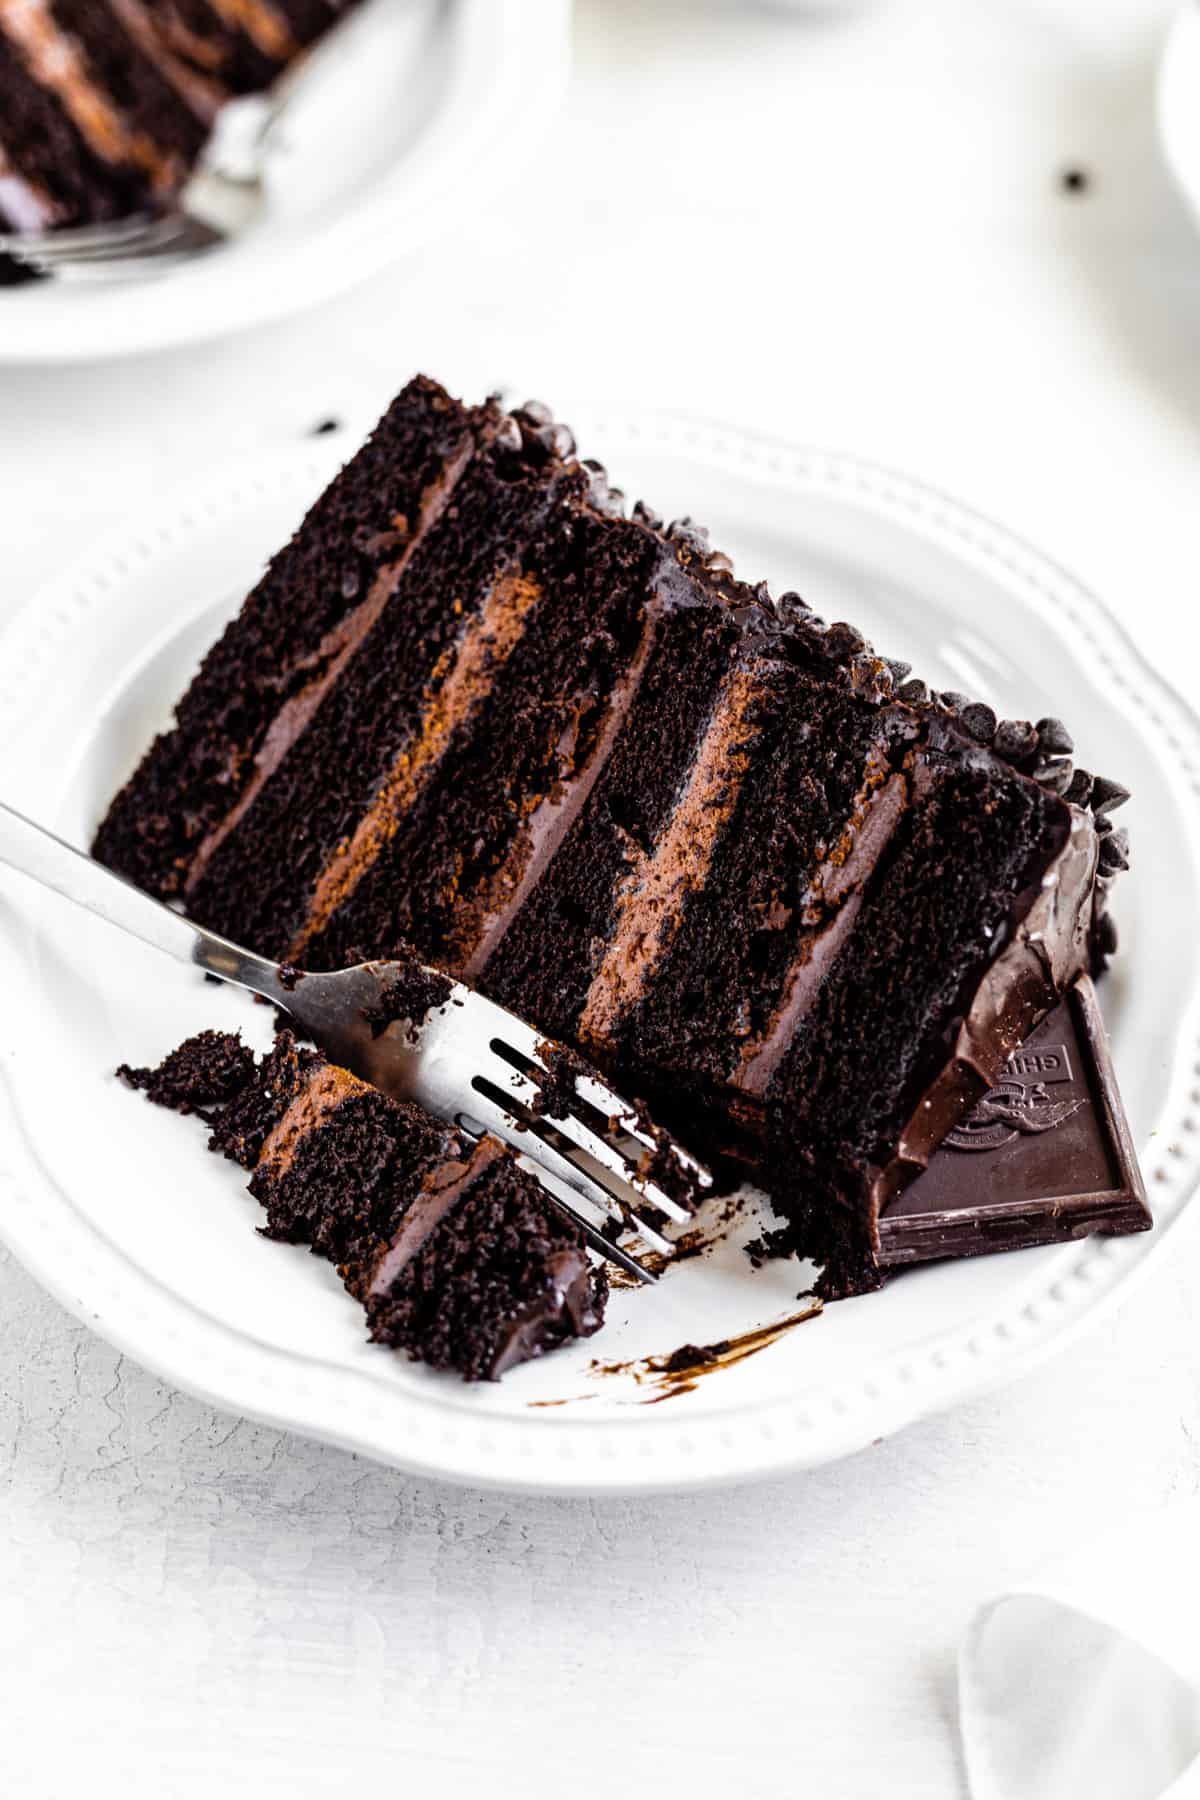 slice of chocolate cake on a white plate with fork taking a piece off